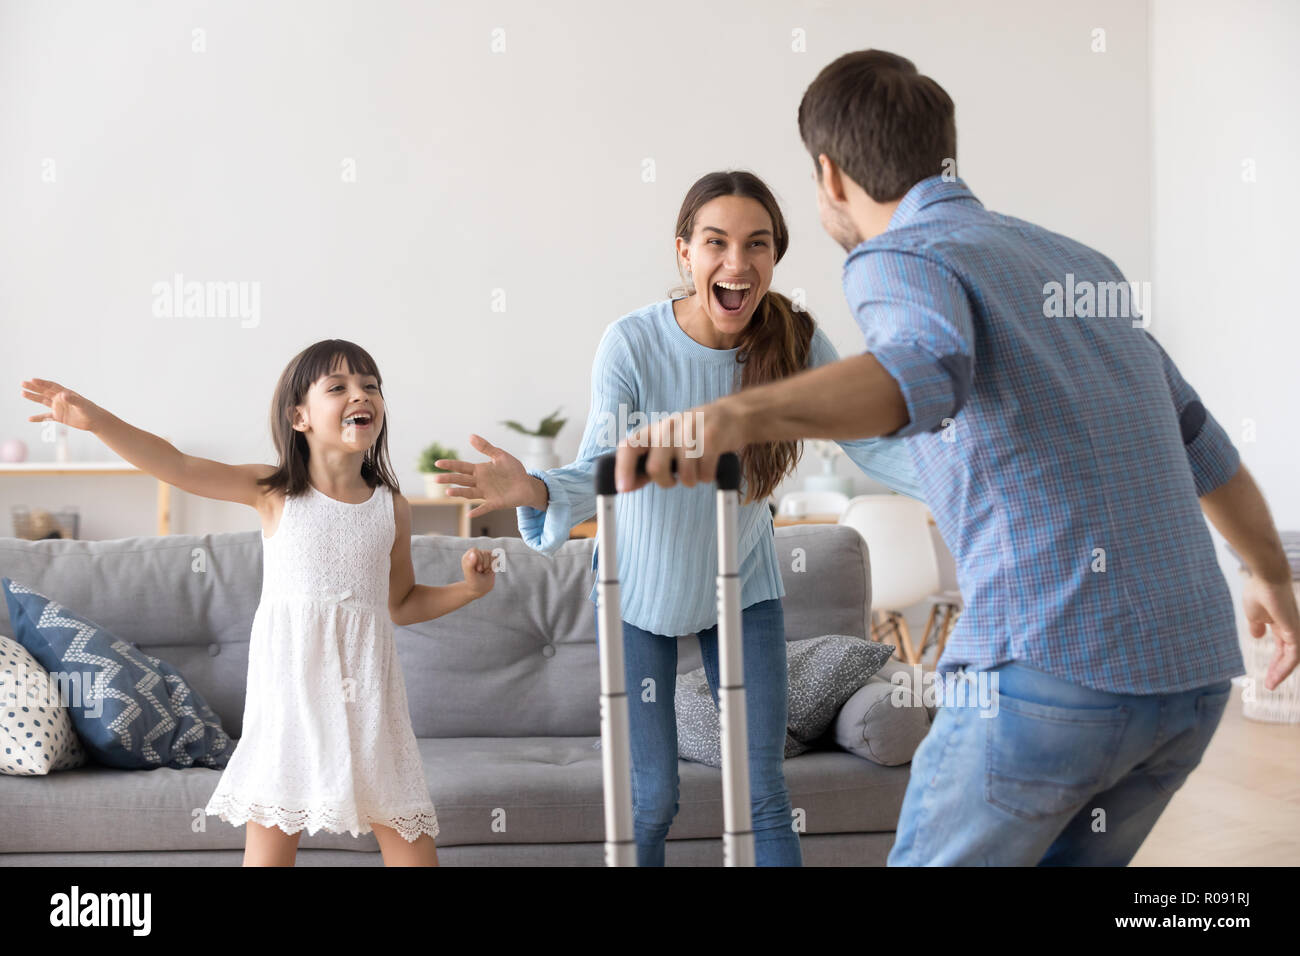 Father arrived at home with suitcase luggage from business trip - Stock Image